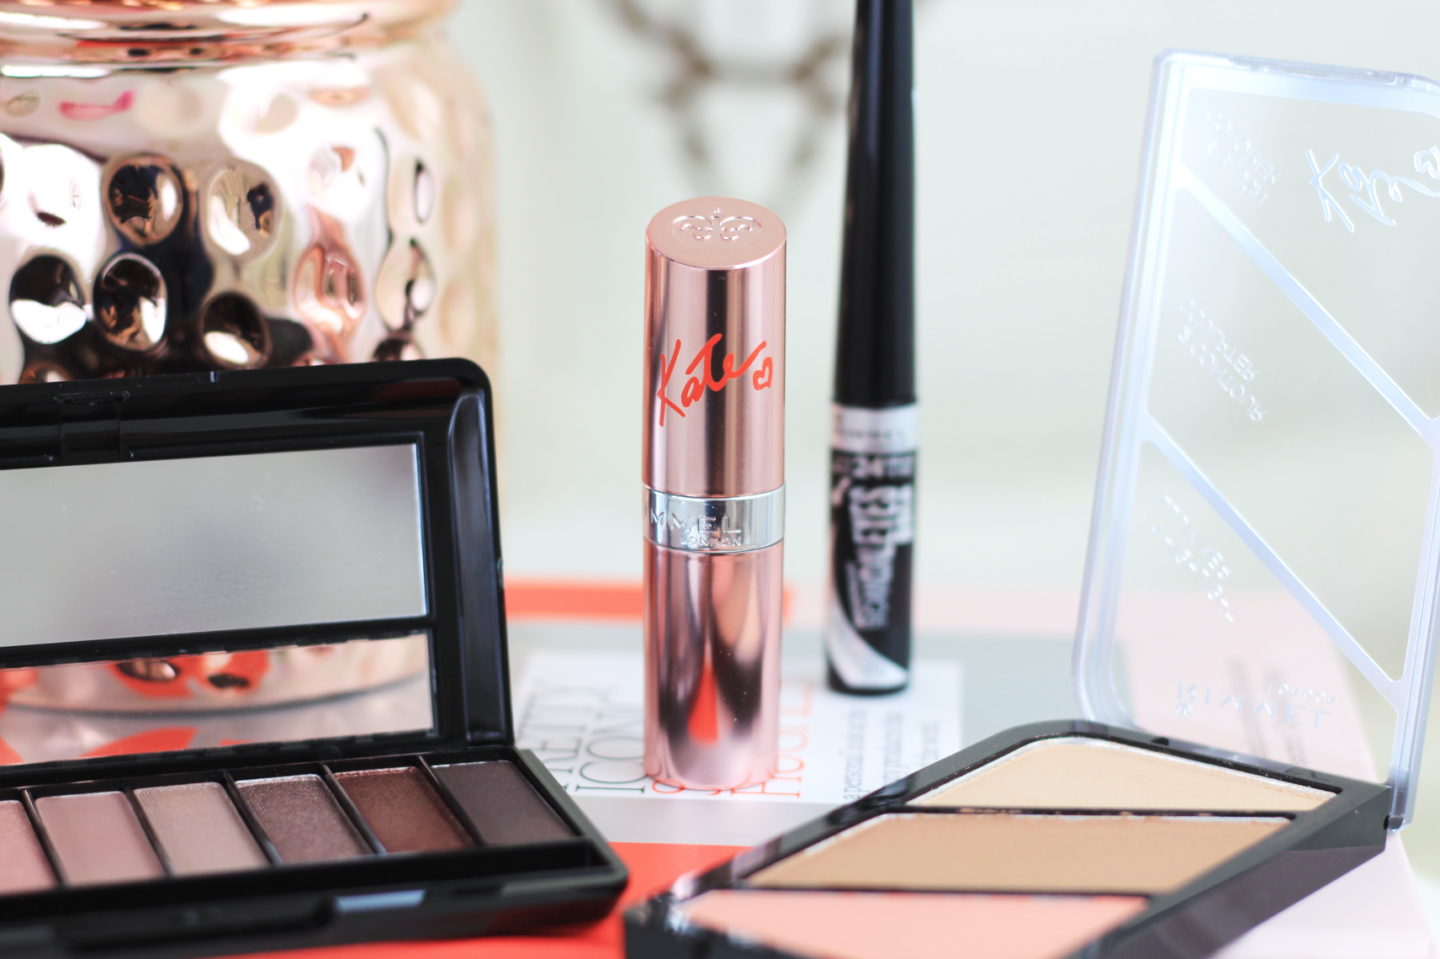 GETTING READY WITH RIMMEL